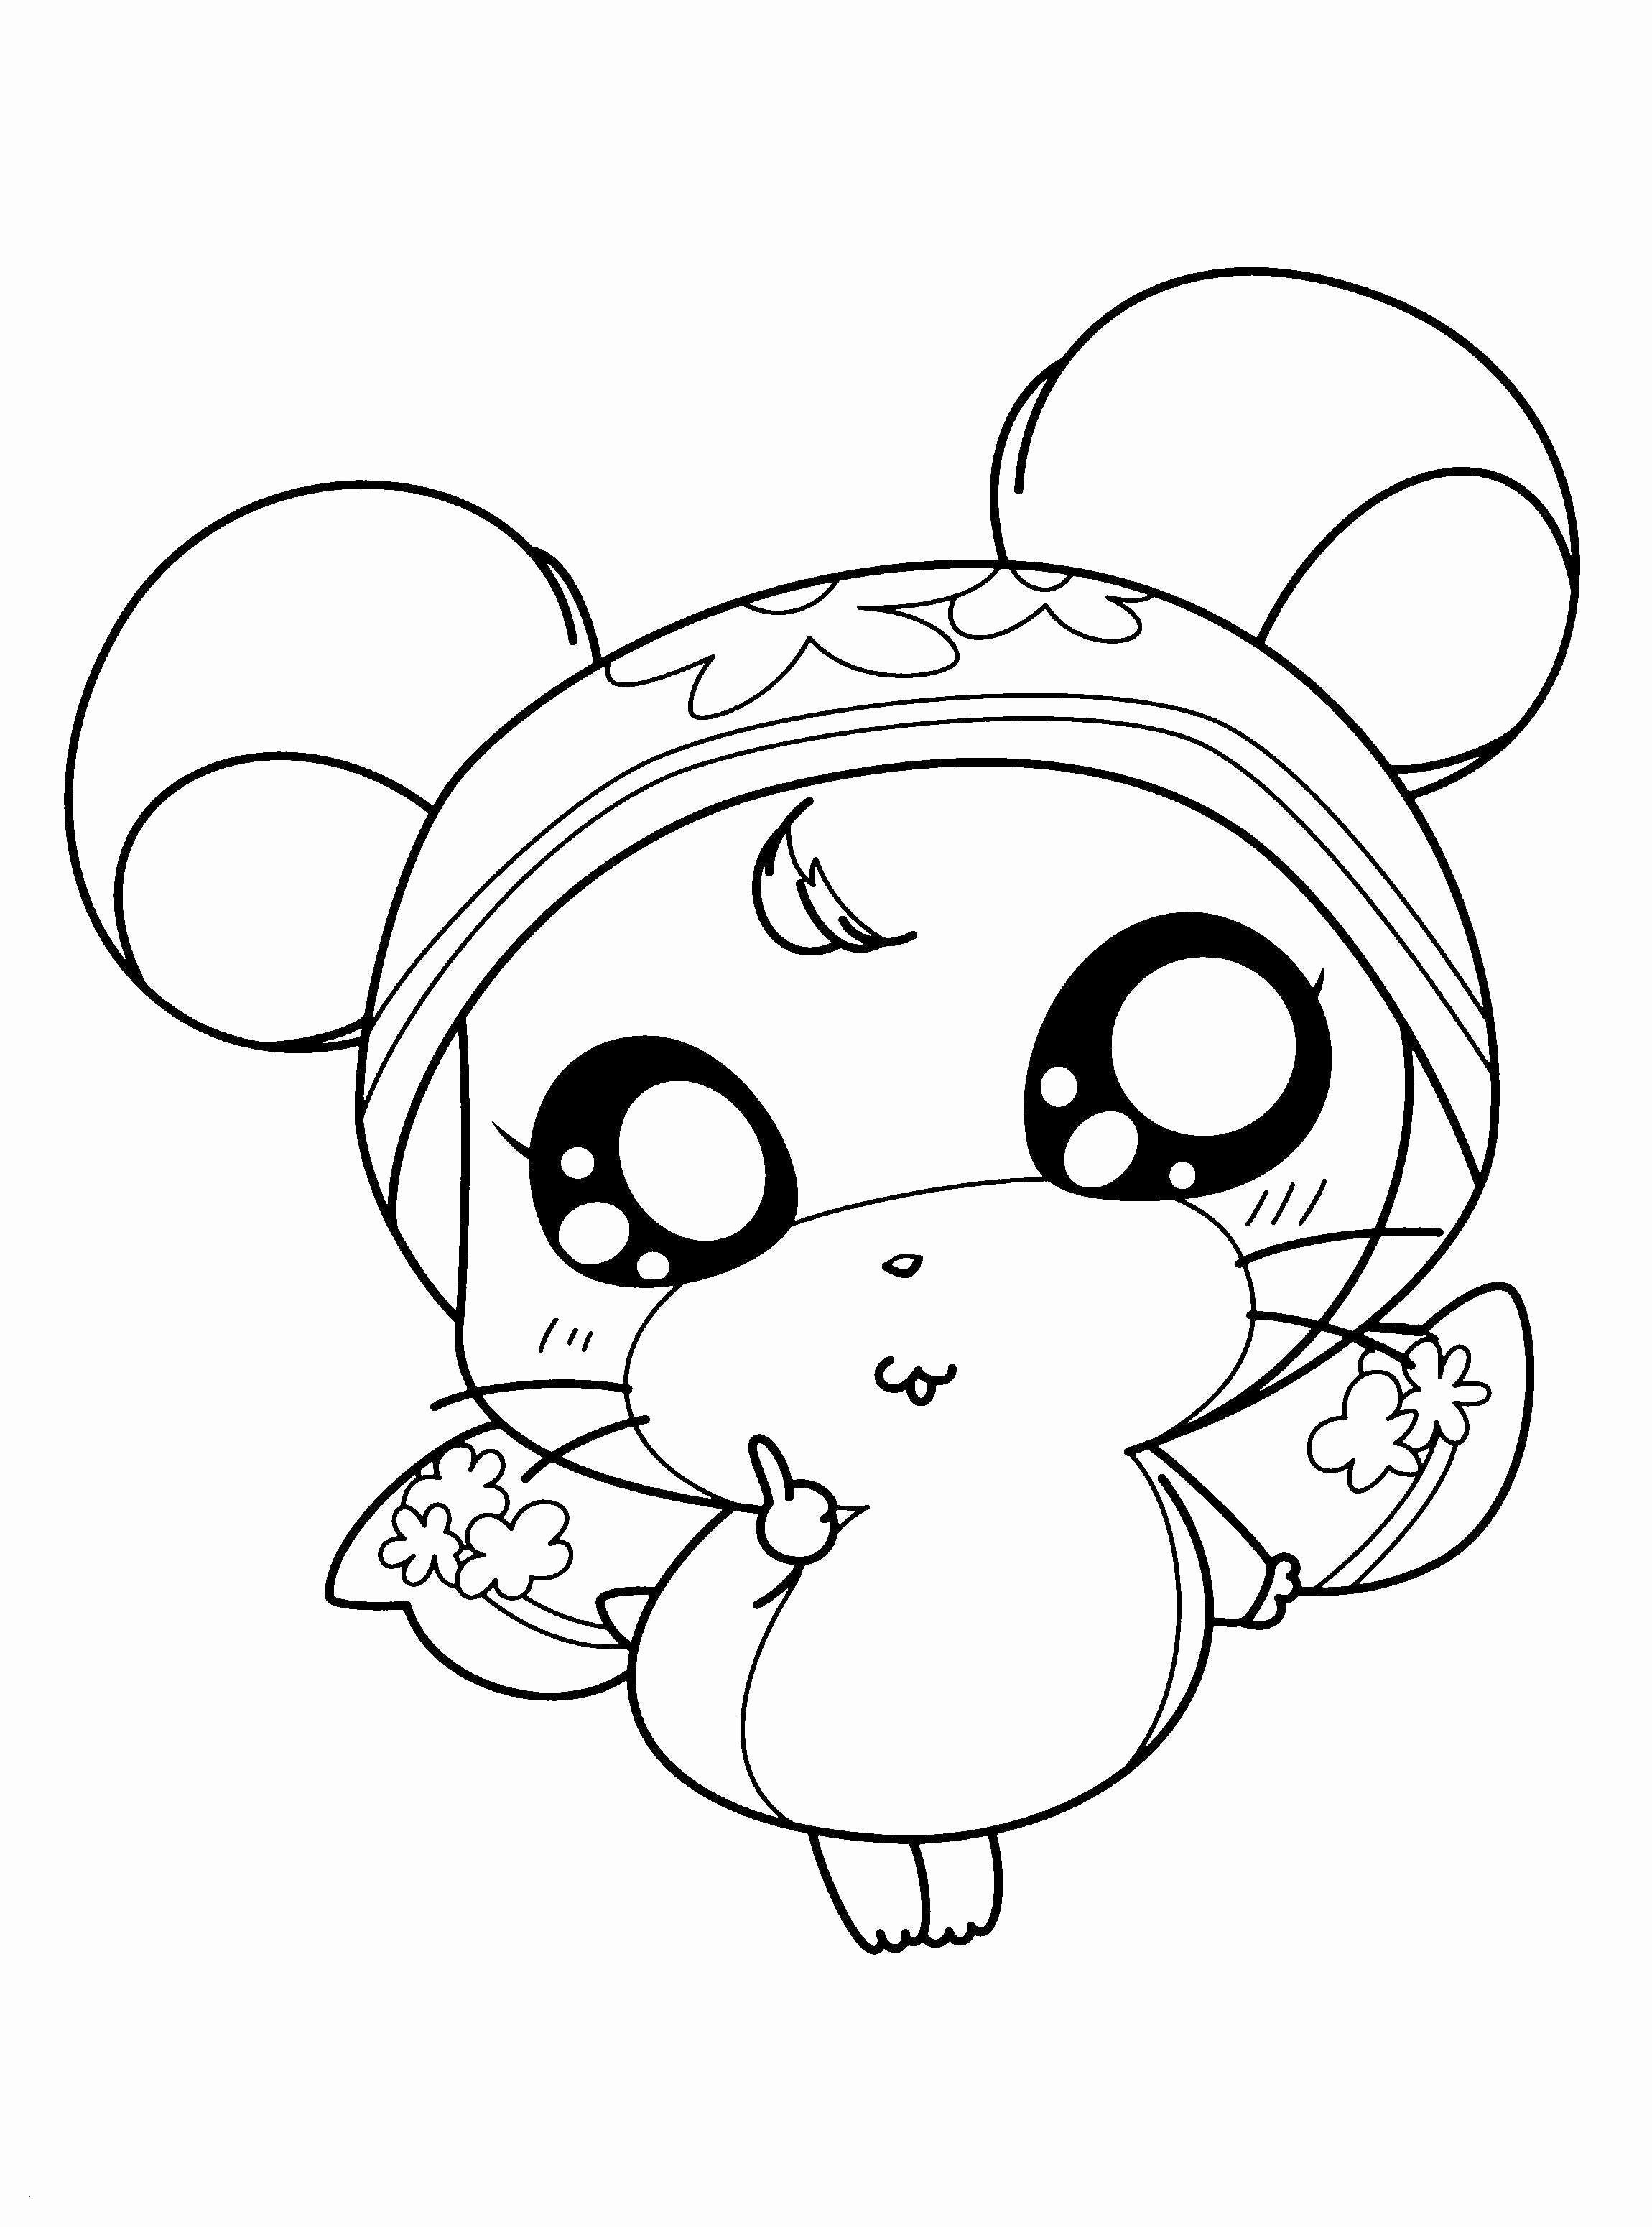 Neu Malvorlagen Tiere Drucken Princess Coloring Pages Pokemon Coloring Pages Animal Coloring Pages